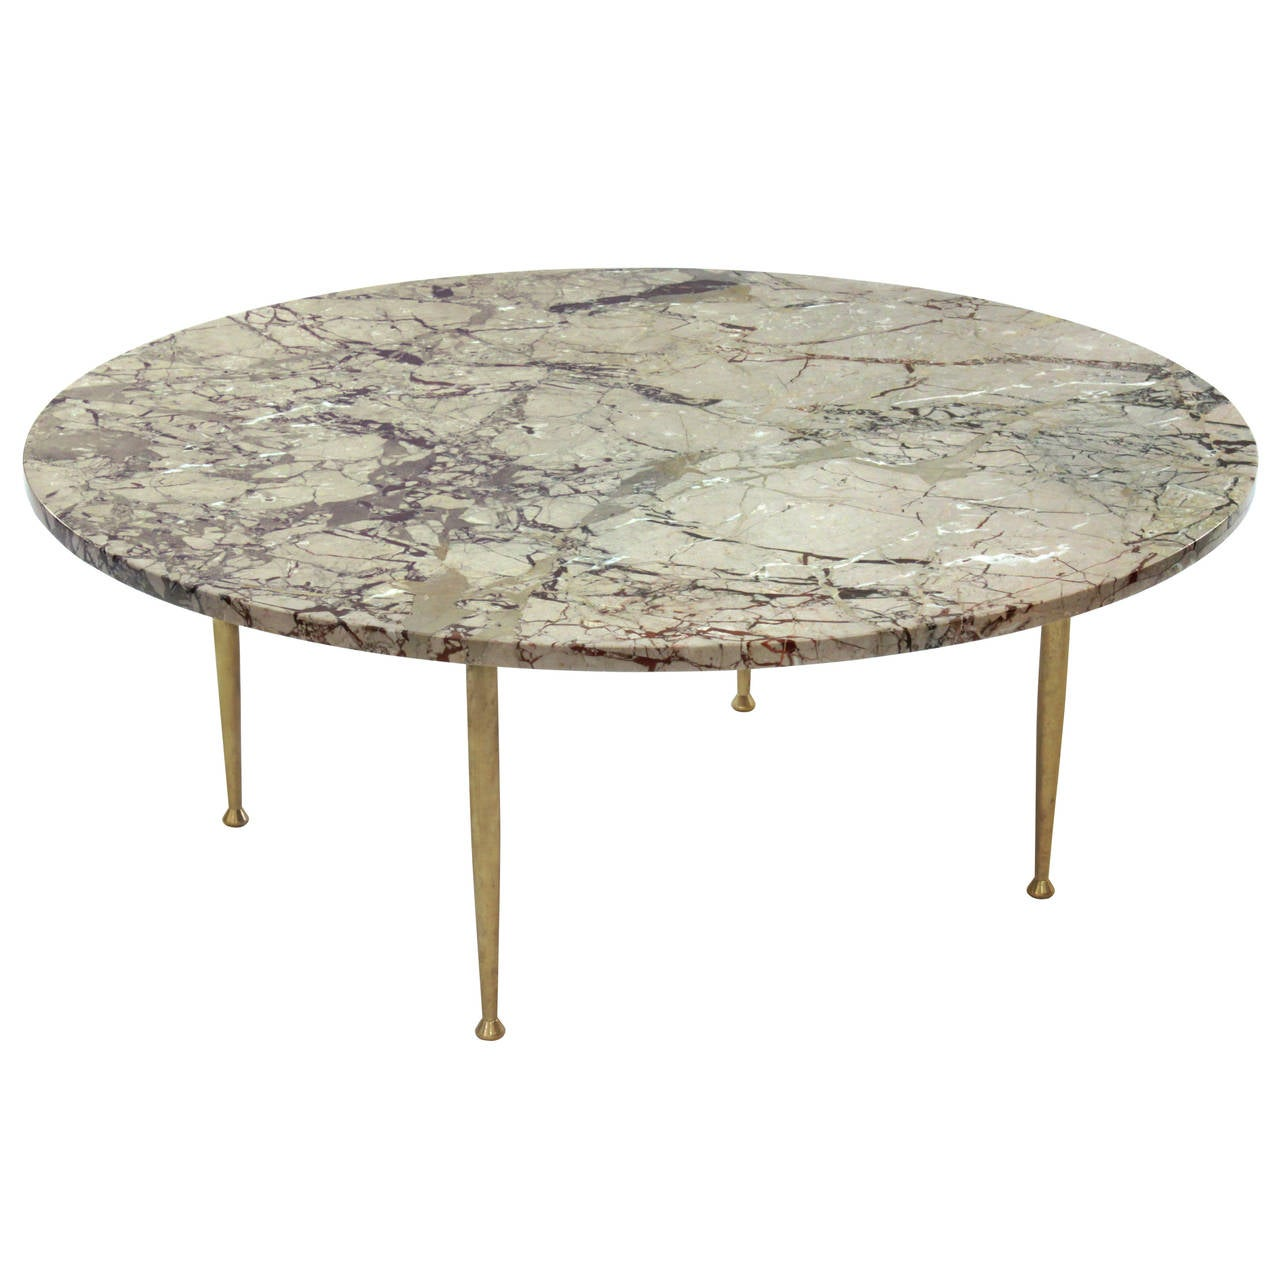 Elegant Coffee Table In Marble With Brass Legs At 1stdibs